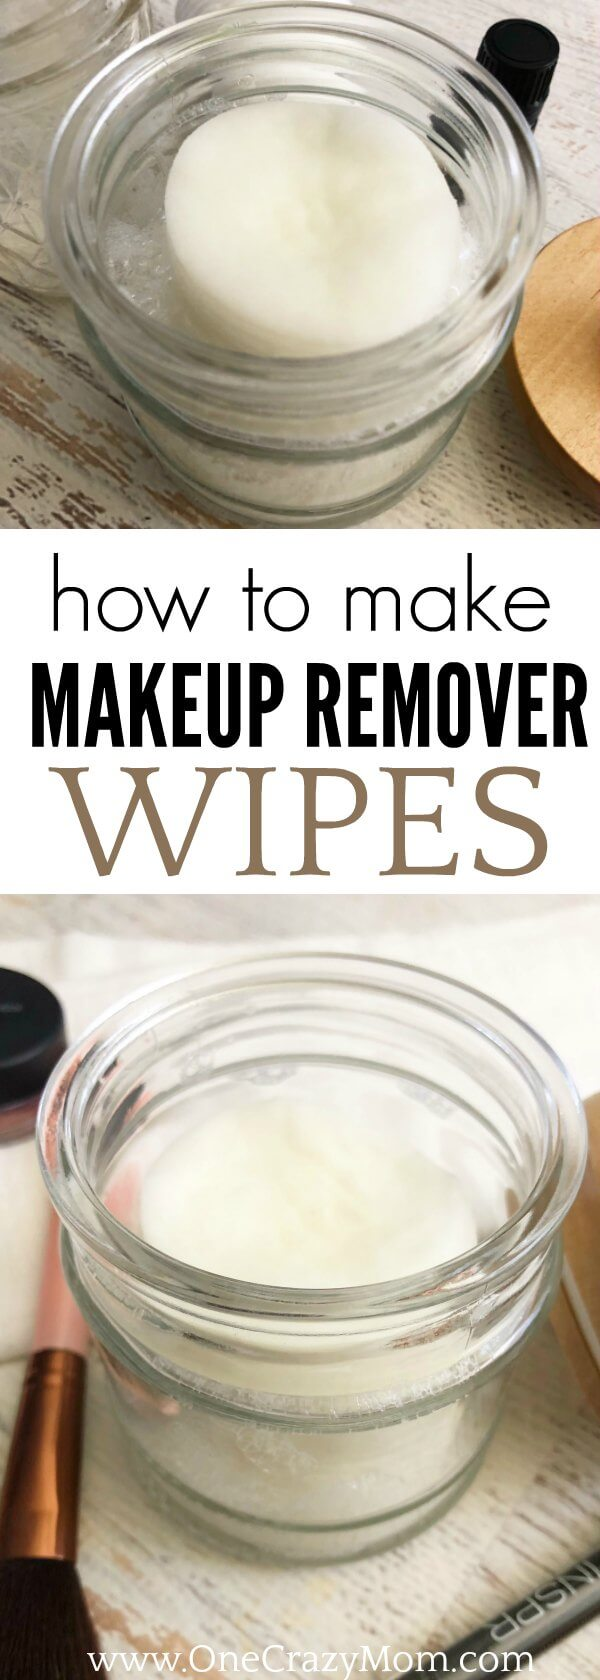 Learn how to make makeup remover wipes in just a few easy steps! Removing makeup will be a breeze once you learn how to make make up remover wipes.